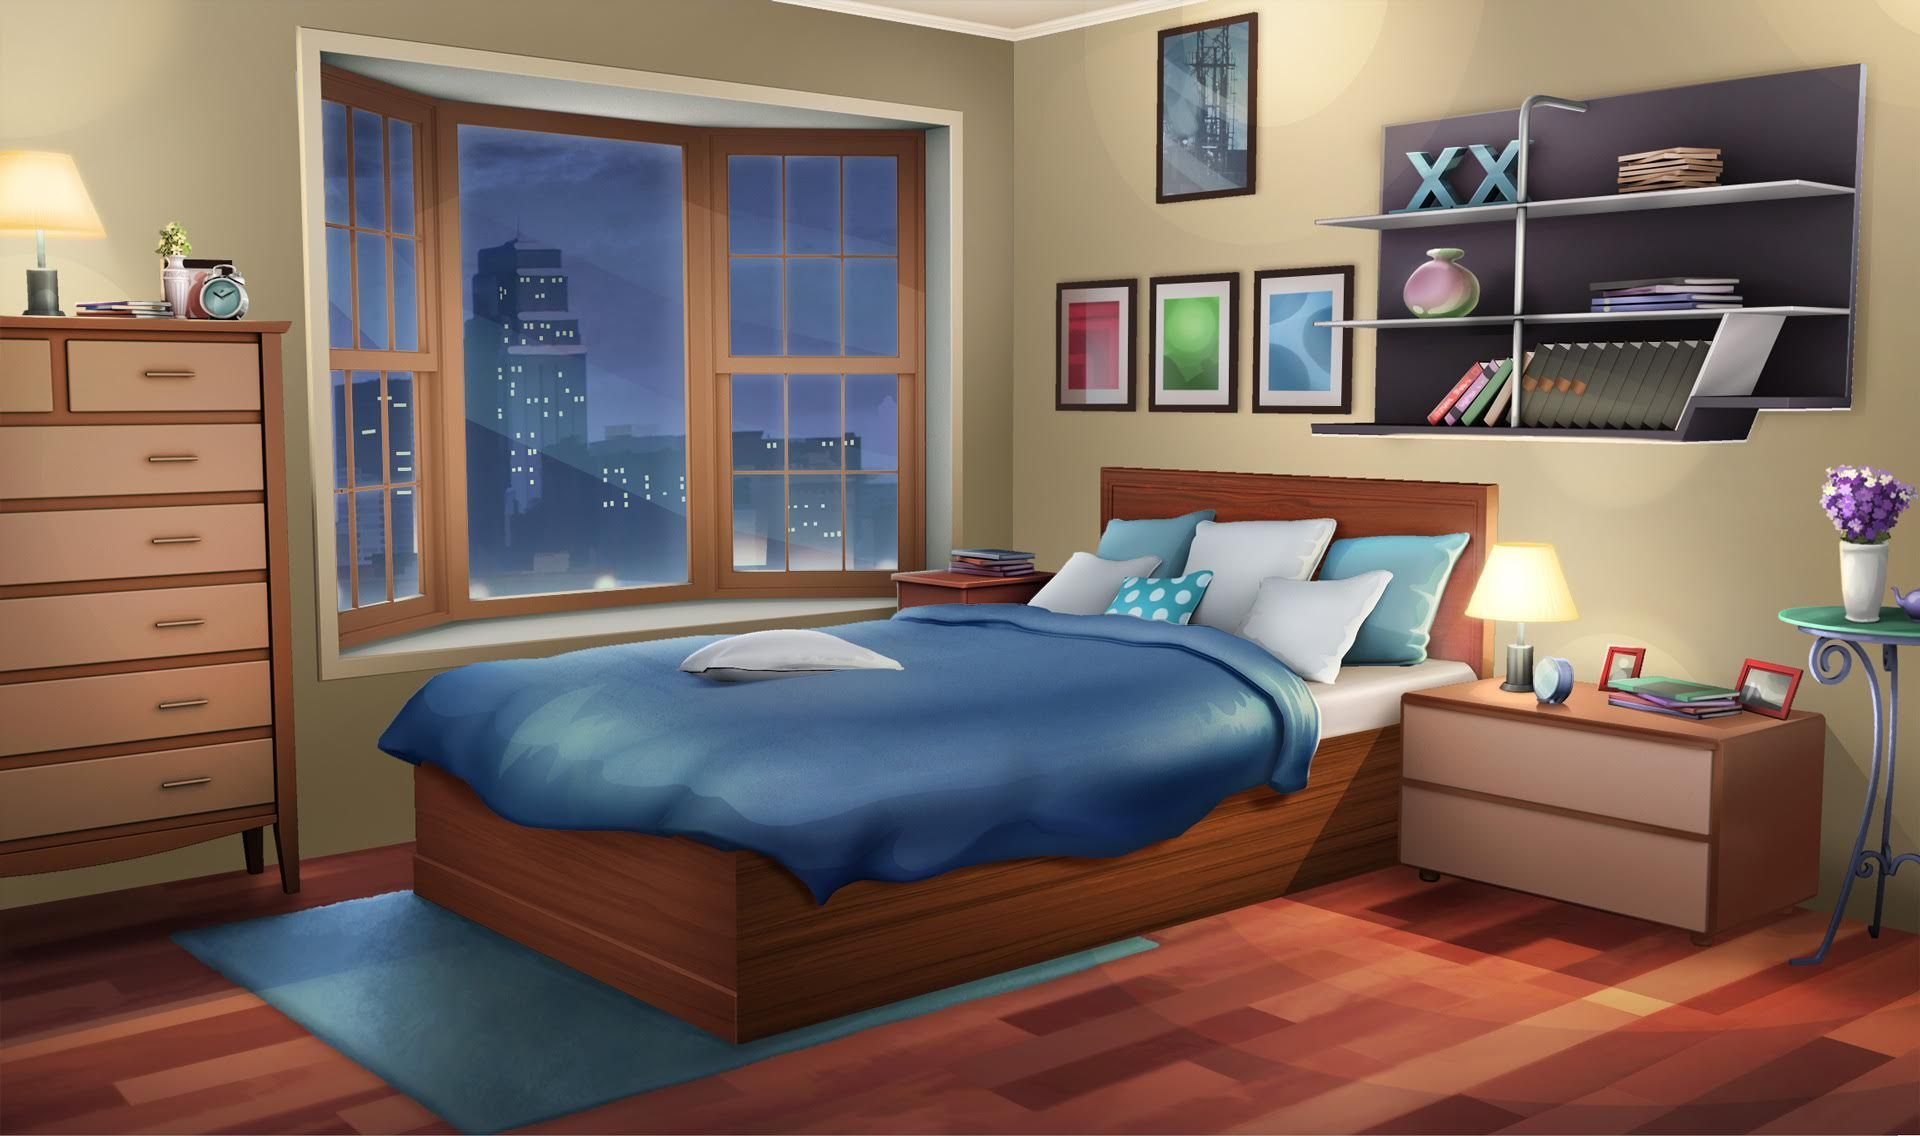 25 Small Bedroom Ideas For Maximizing Space And Style Living Room Background Fancy Bedroom Bedroom Night